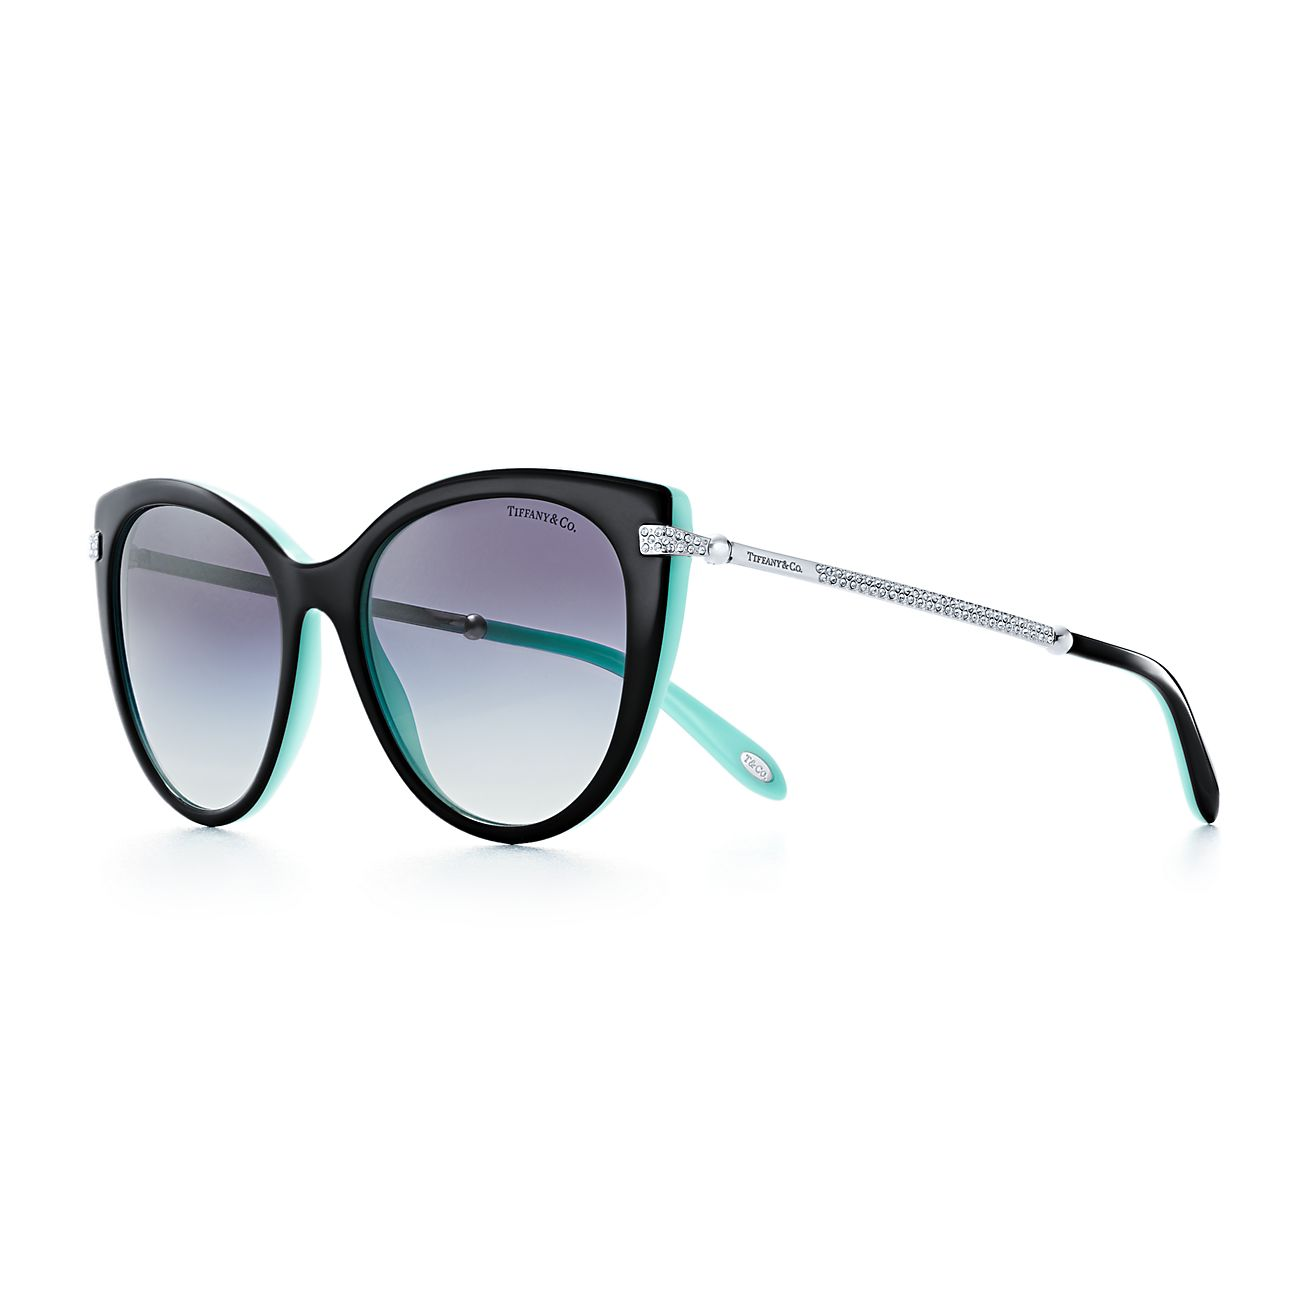 Tiffany Glasses Online - Best Glasses Cnapracticetesting.Com 2018